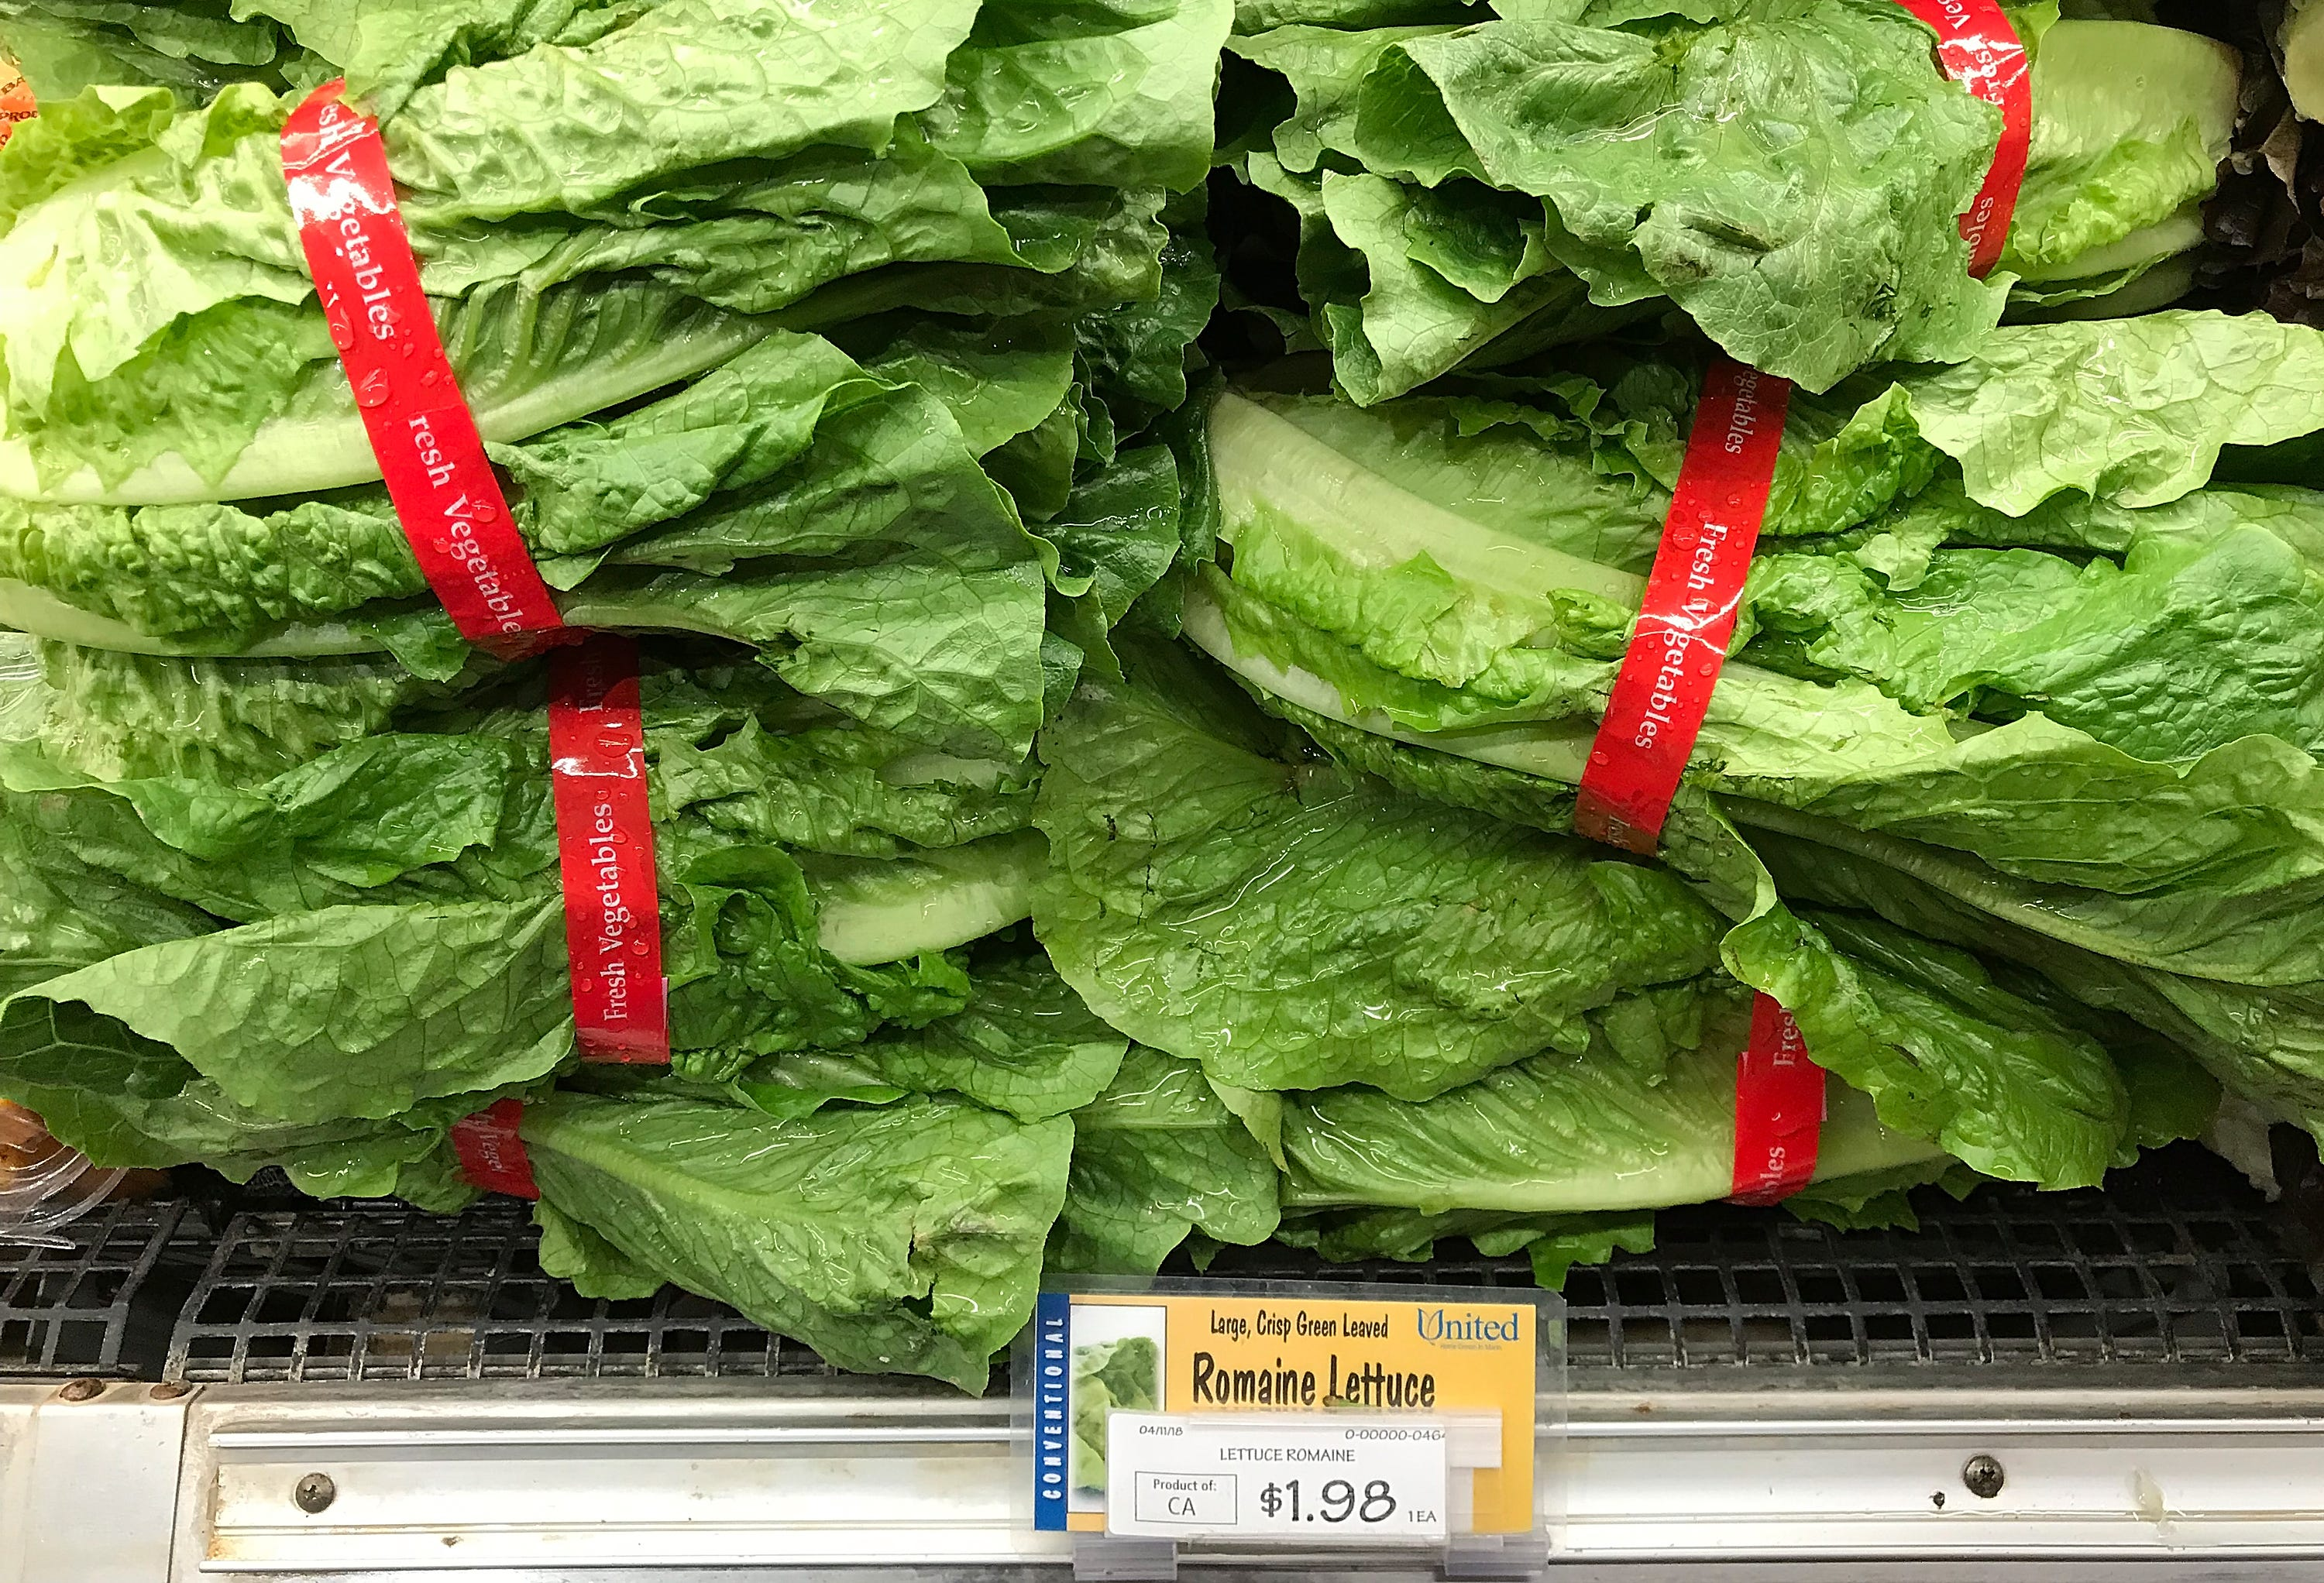 Large cattle farm may have caused romaine lettuce E. coli outbreak